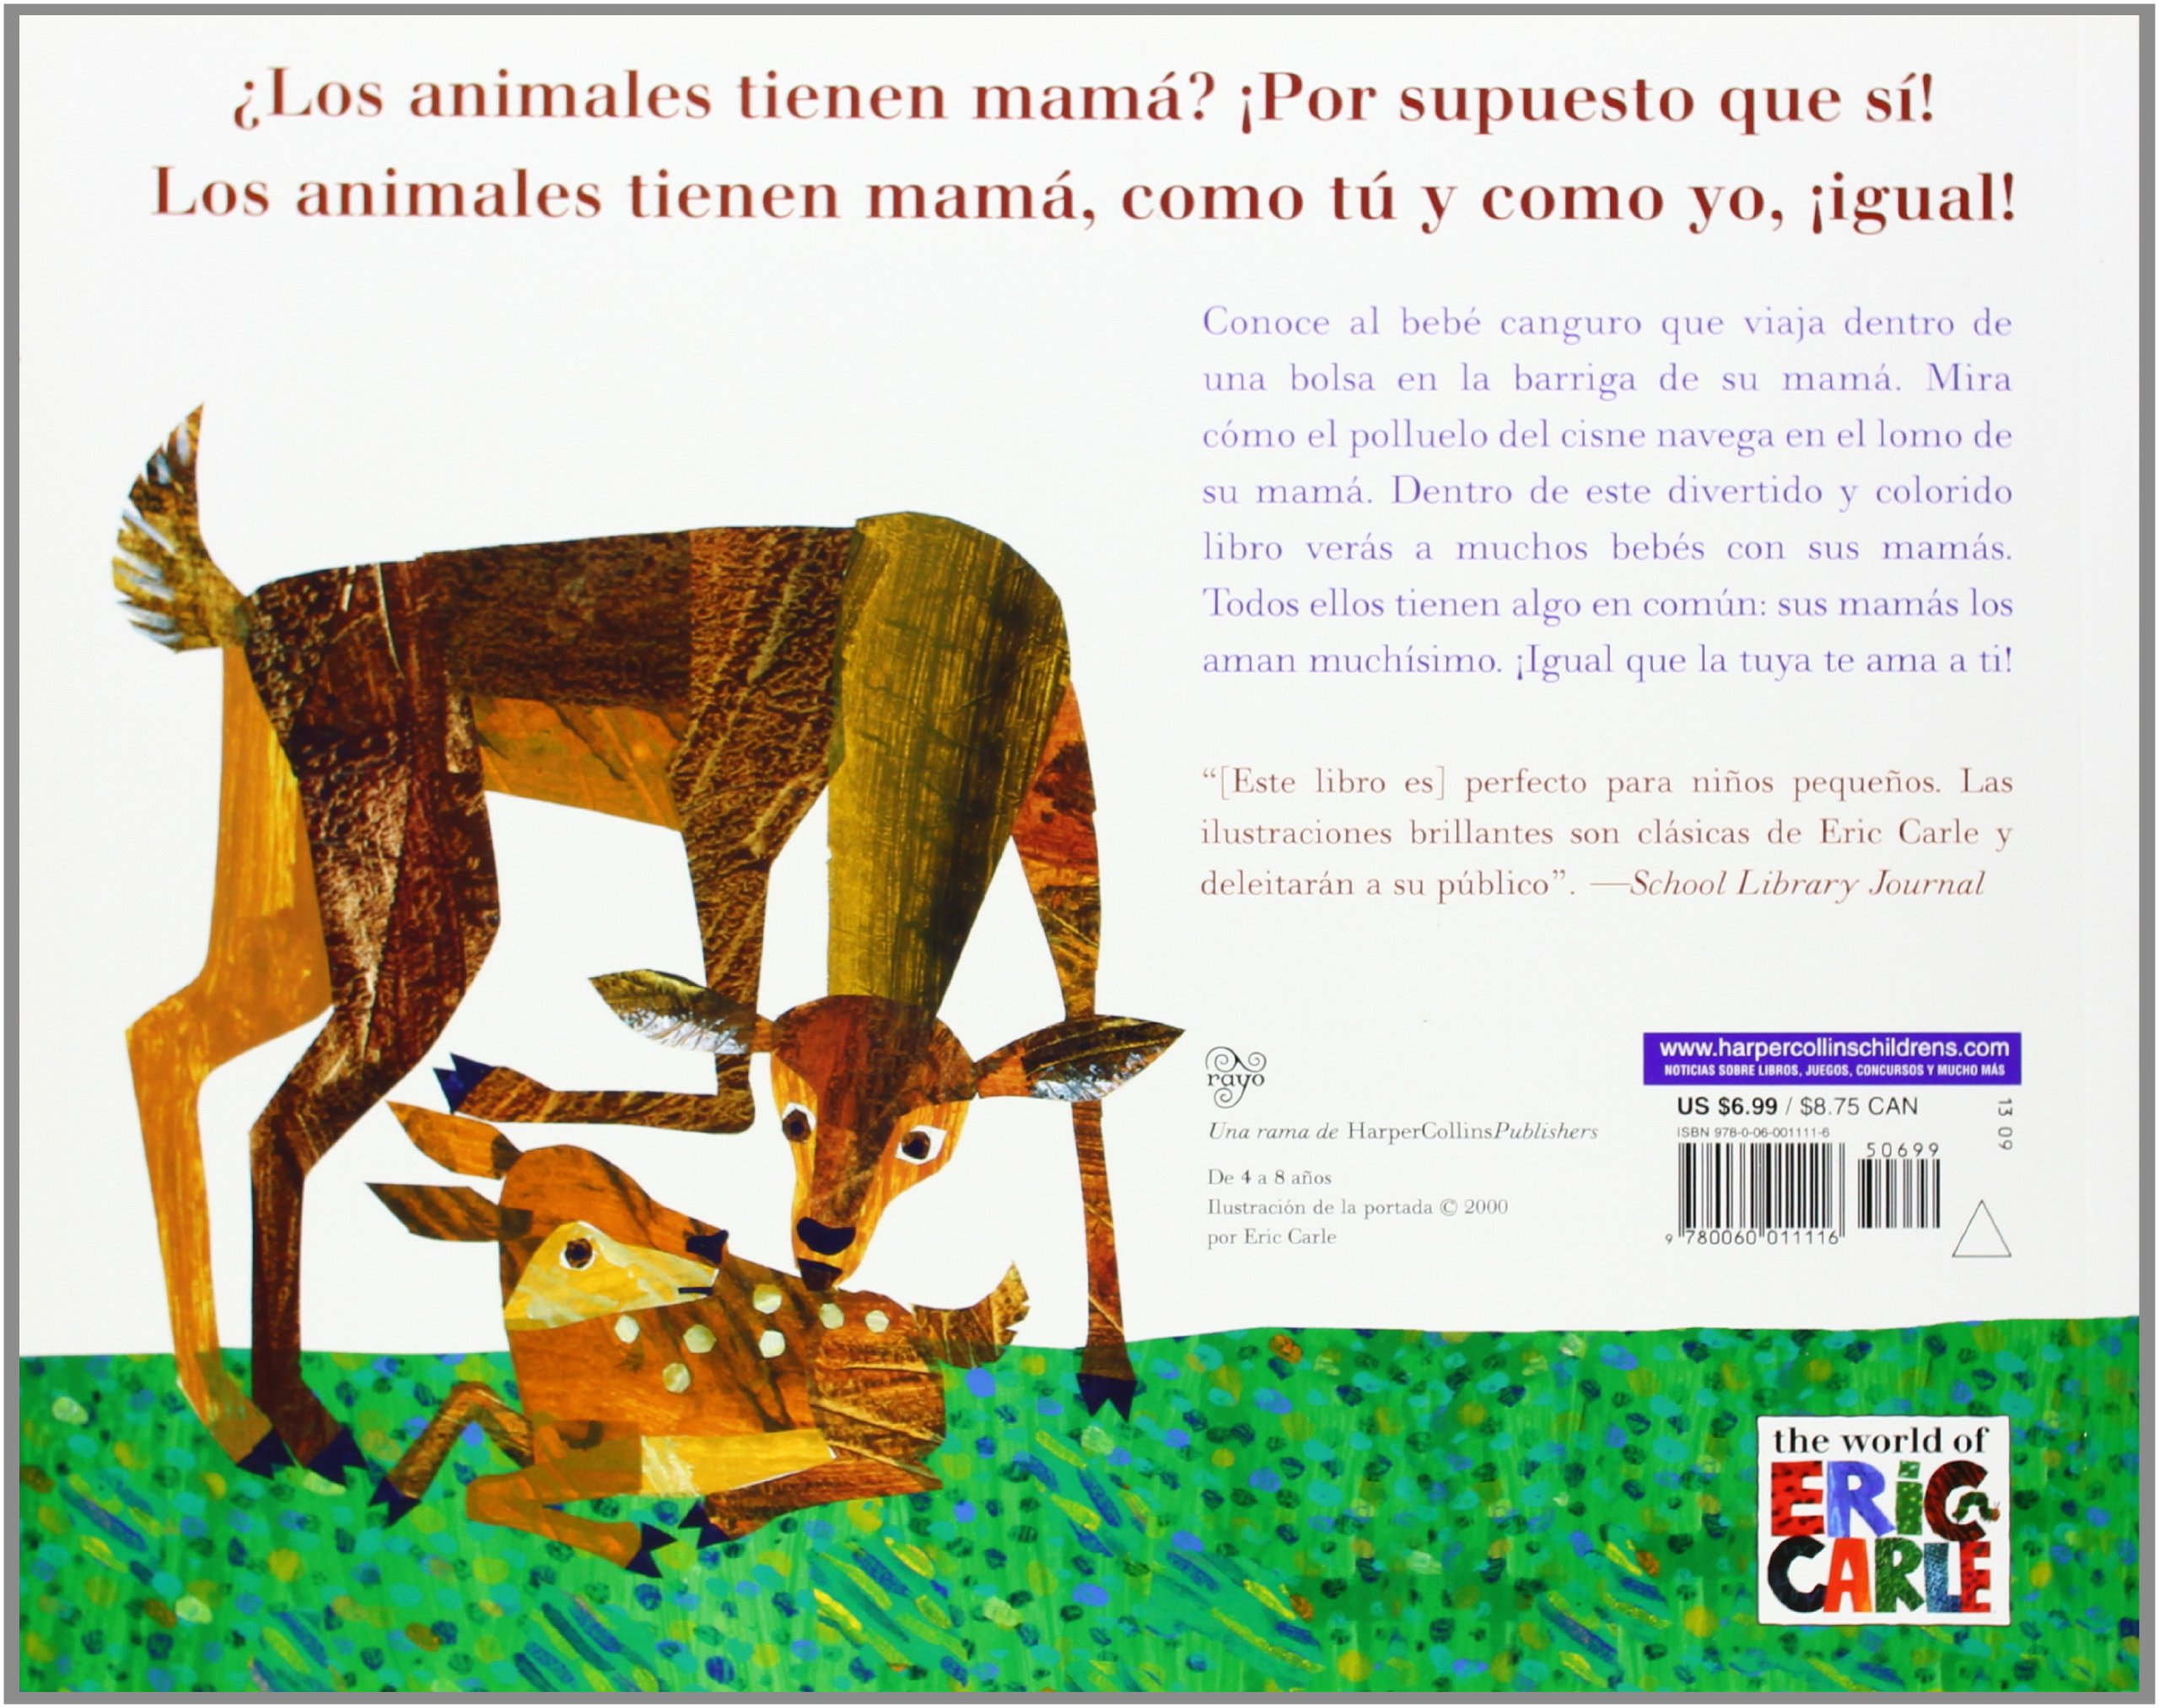 El canguro tiene mama? (Spanish edition) (Does a Kangaroo Have a Mother,  Too?): Eric Carle: 9780060011116: Amazon.com: Books